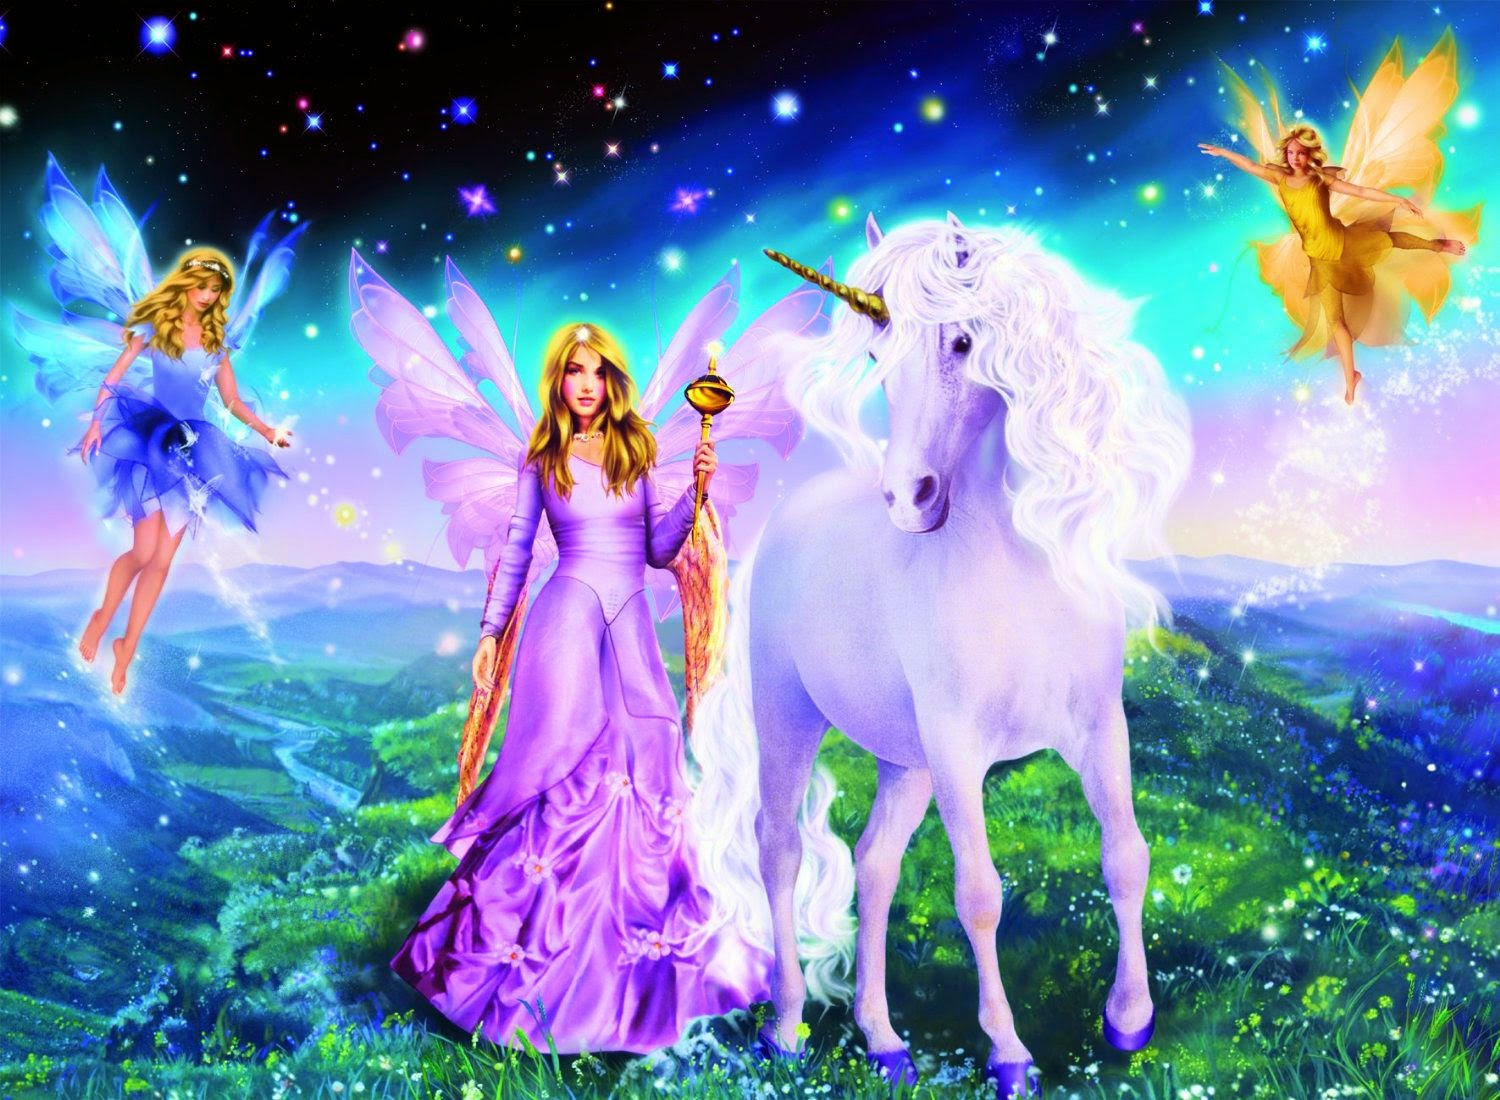 [Image: White-Unicorn-with-Fairy-flying-image-1500x1100.jpg]